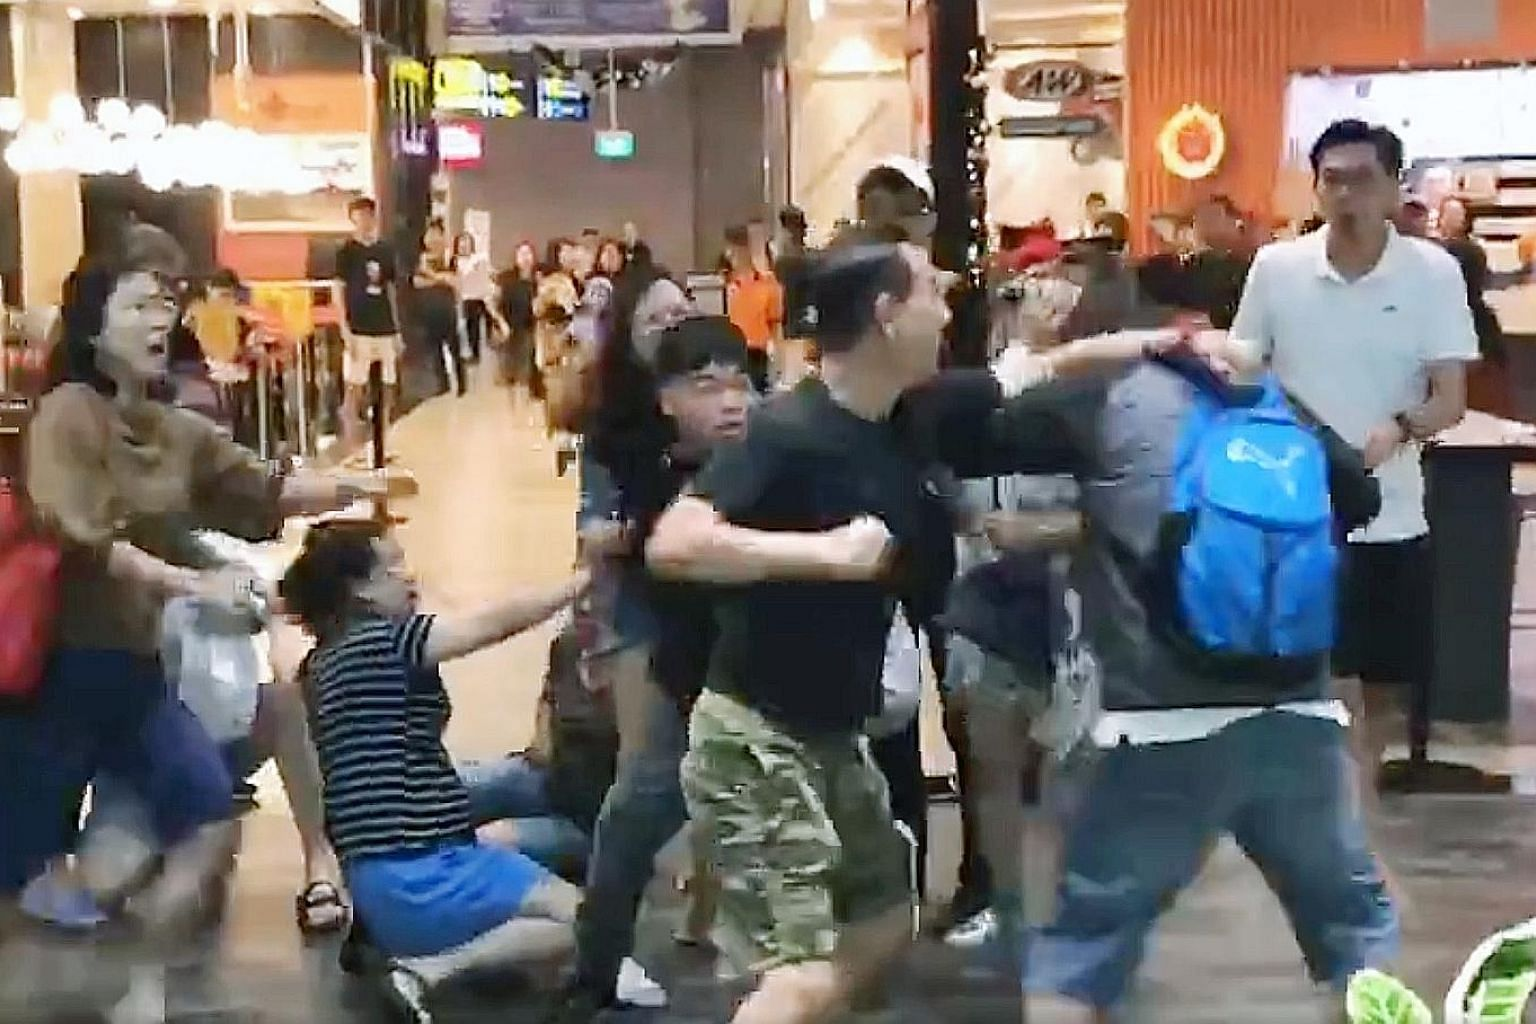 A screengrab of a video showing about 10 people, including women, involved in the brawl in front of fast-food chain A&W at Jewel Changi Airport on Sunday. PHOTO: